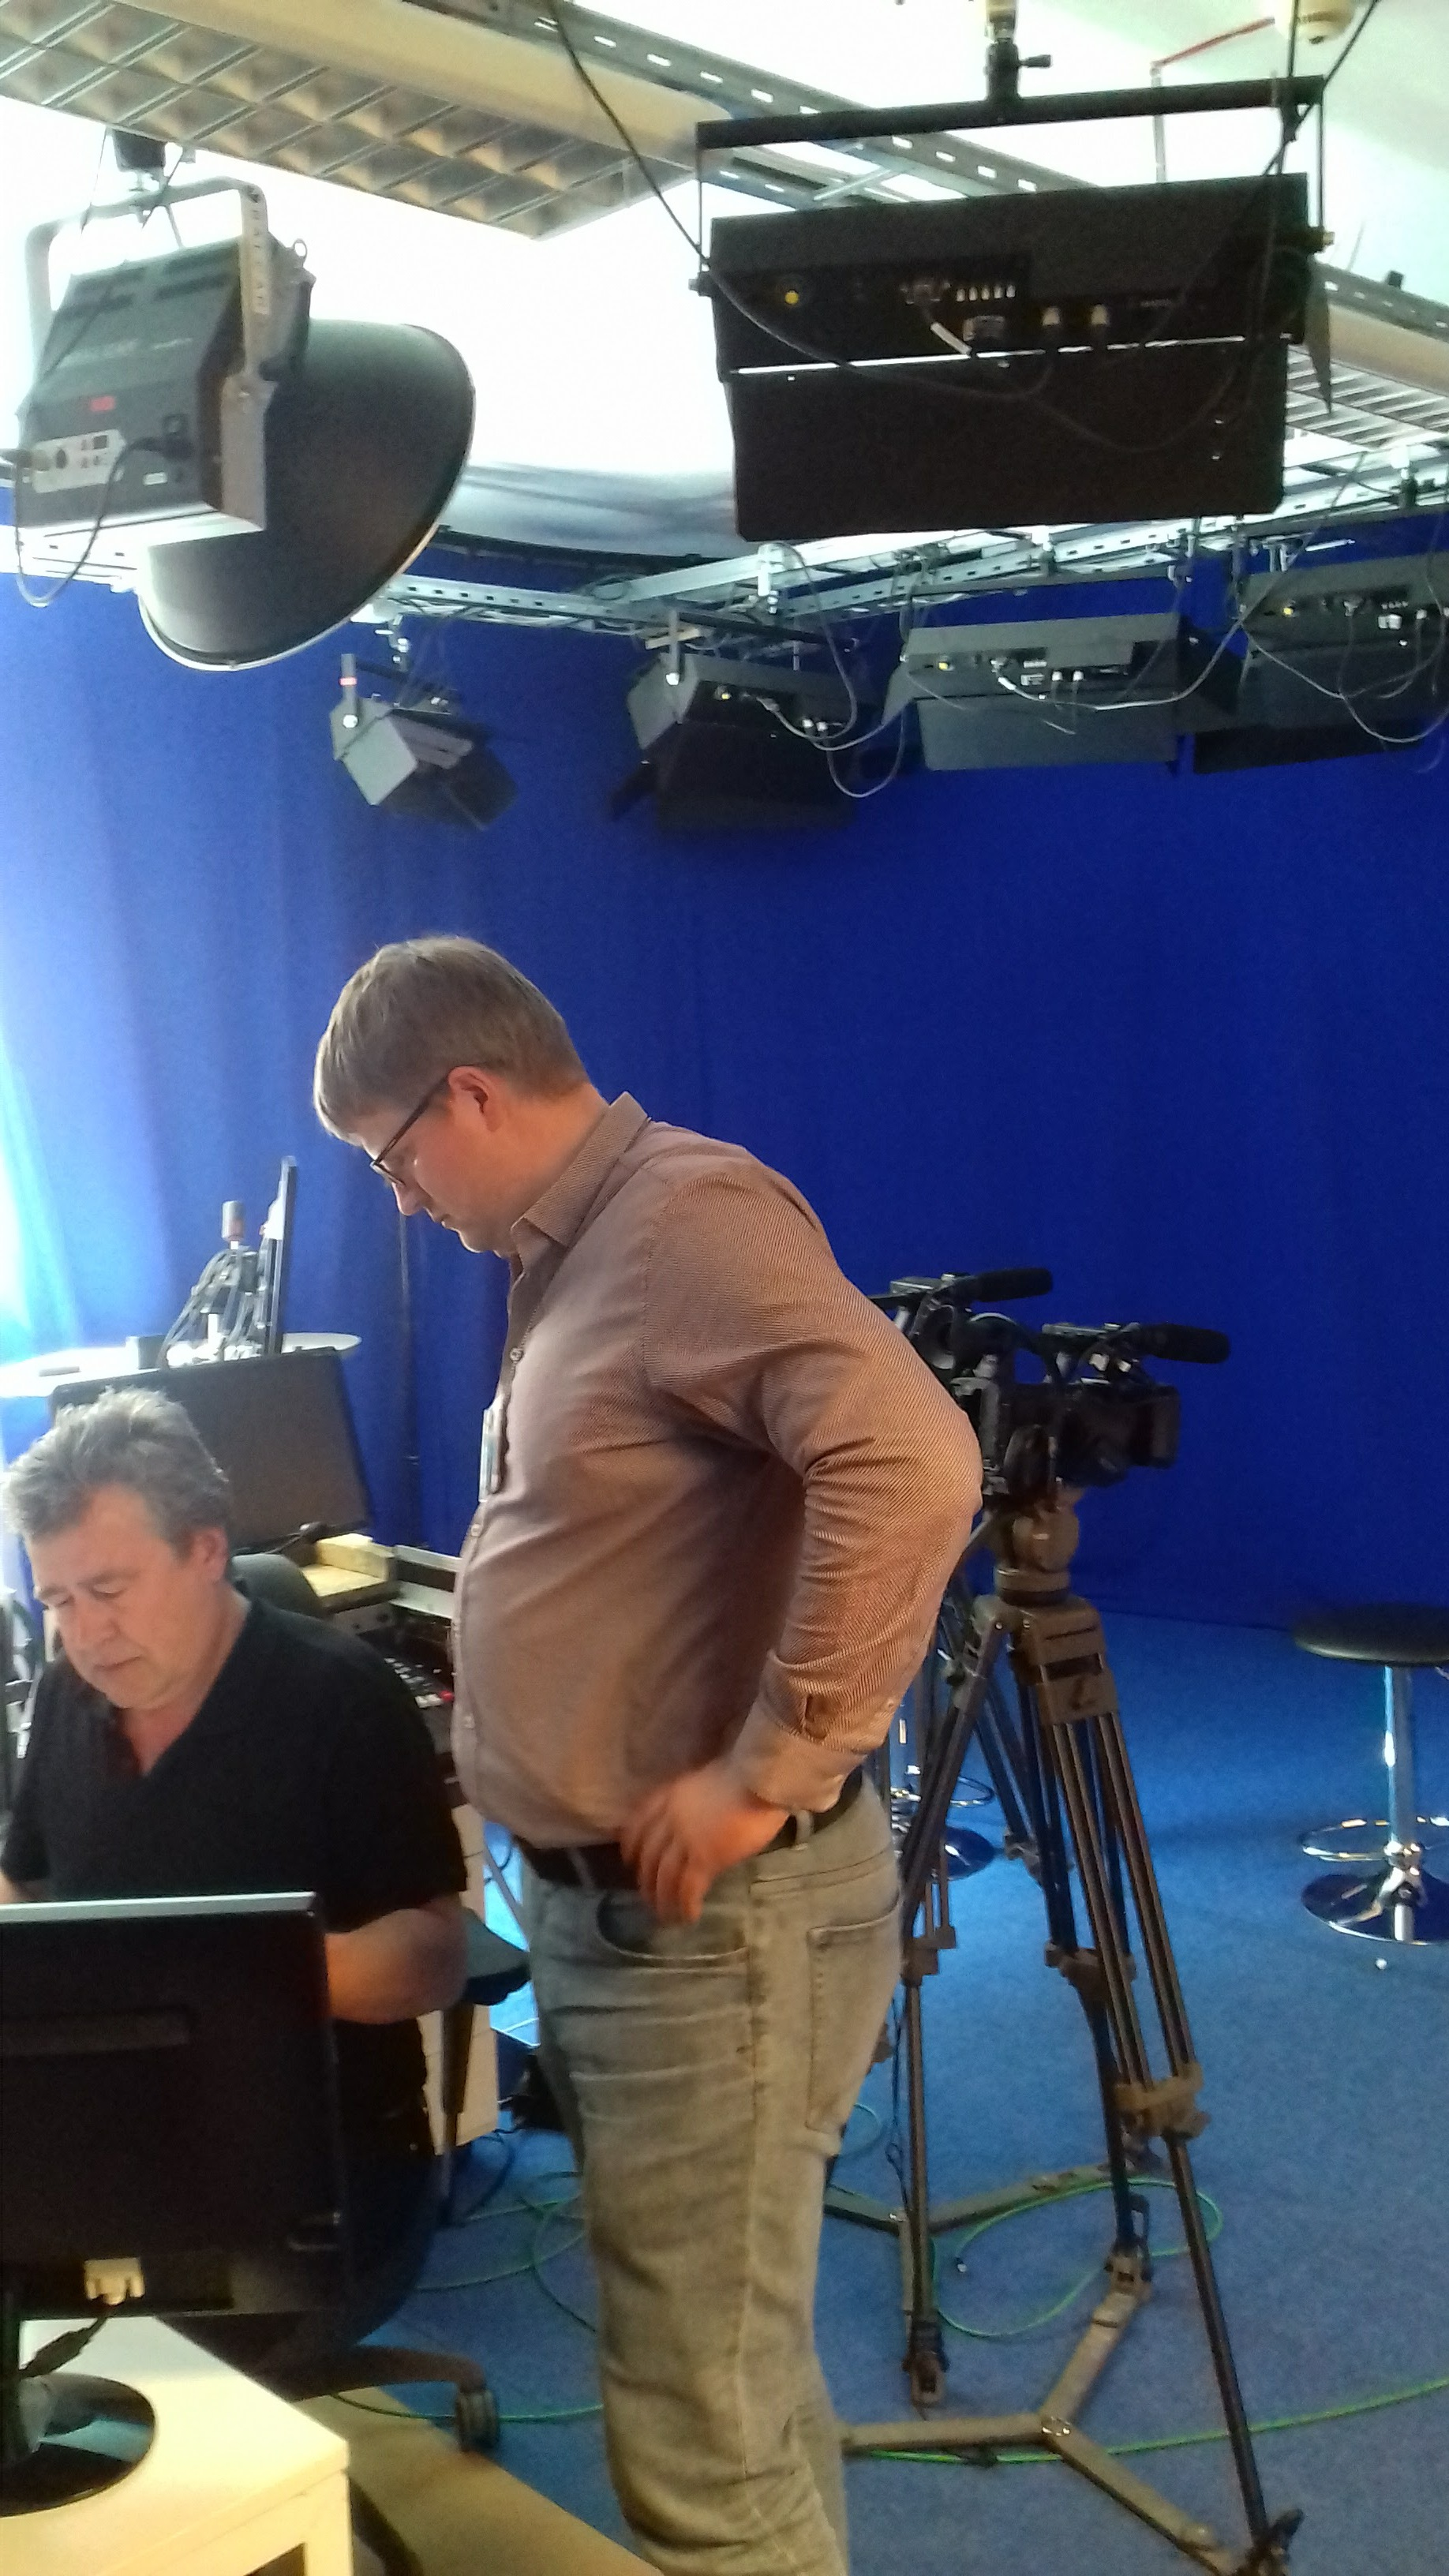 Well equipped video studio onsite is a very useful addition for startups and innovators